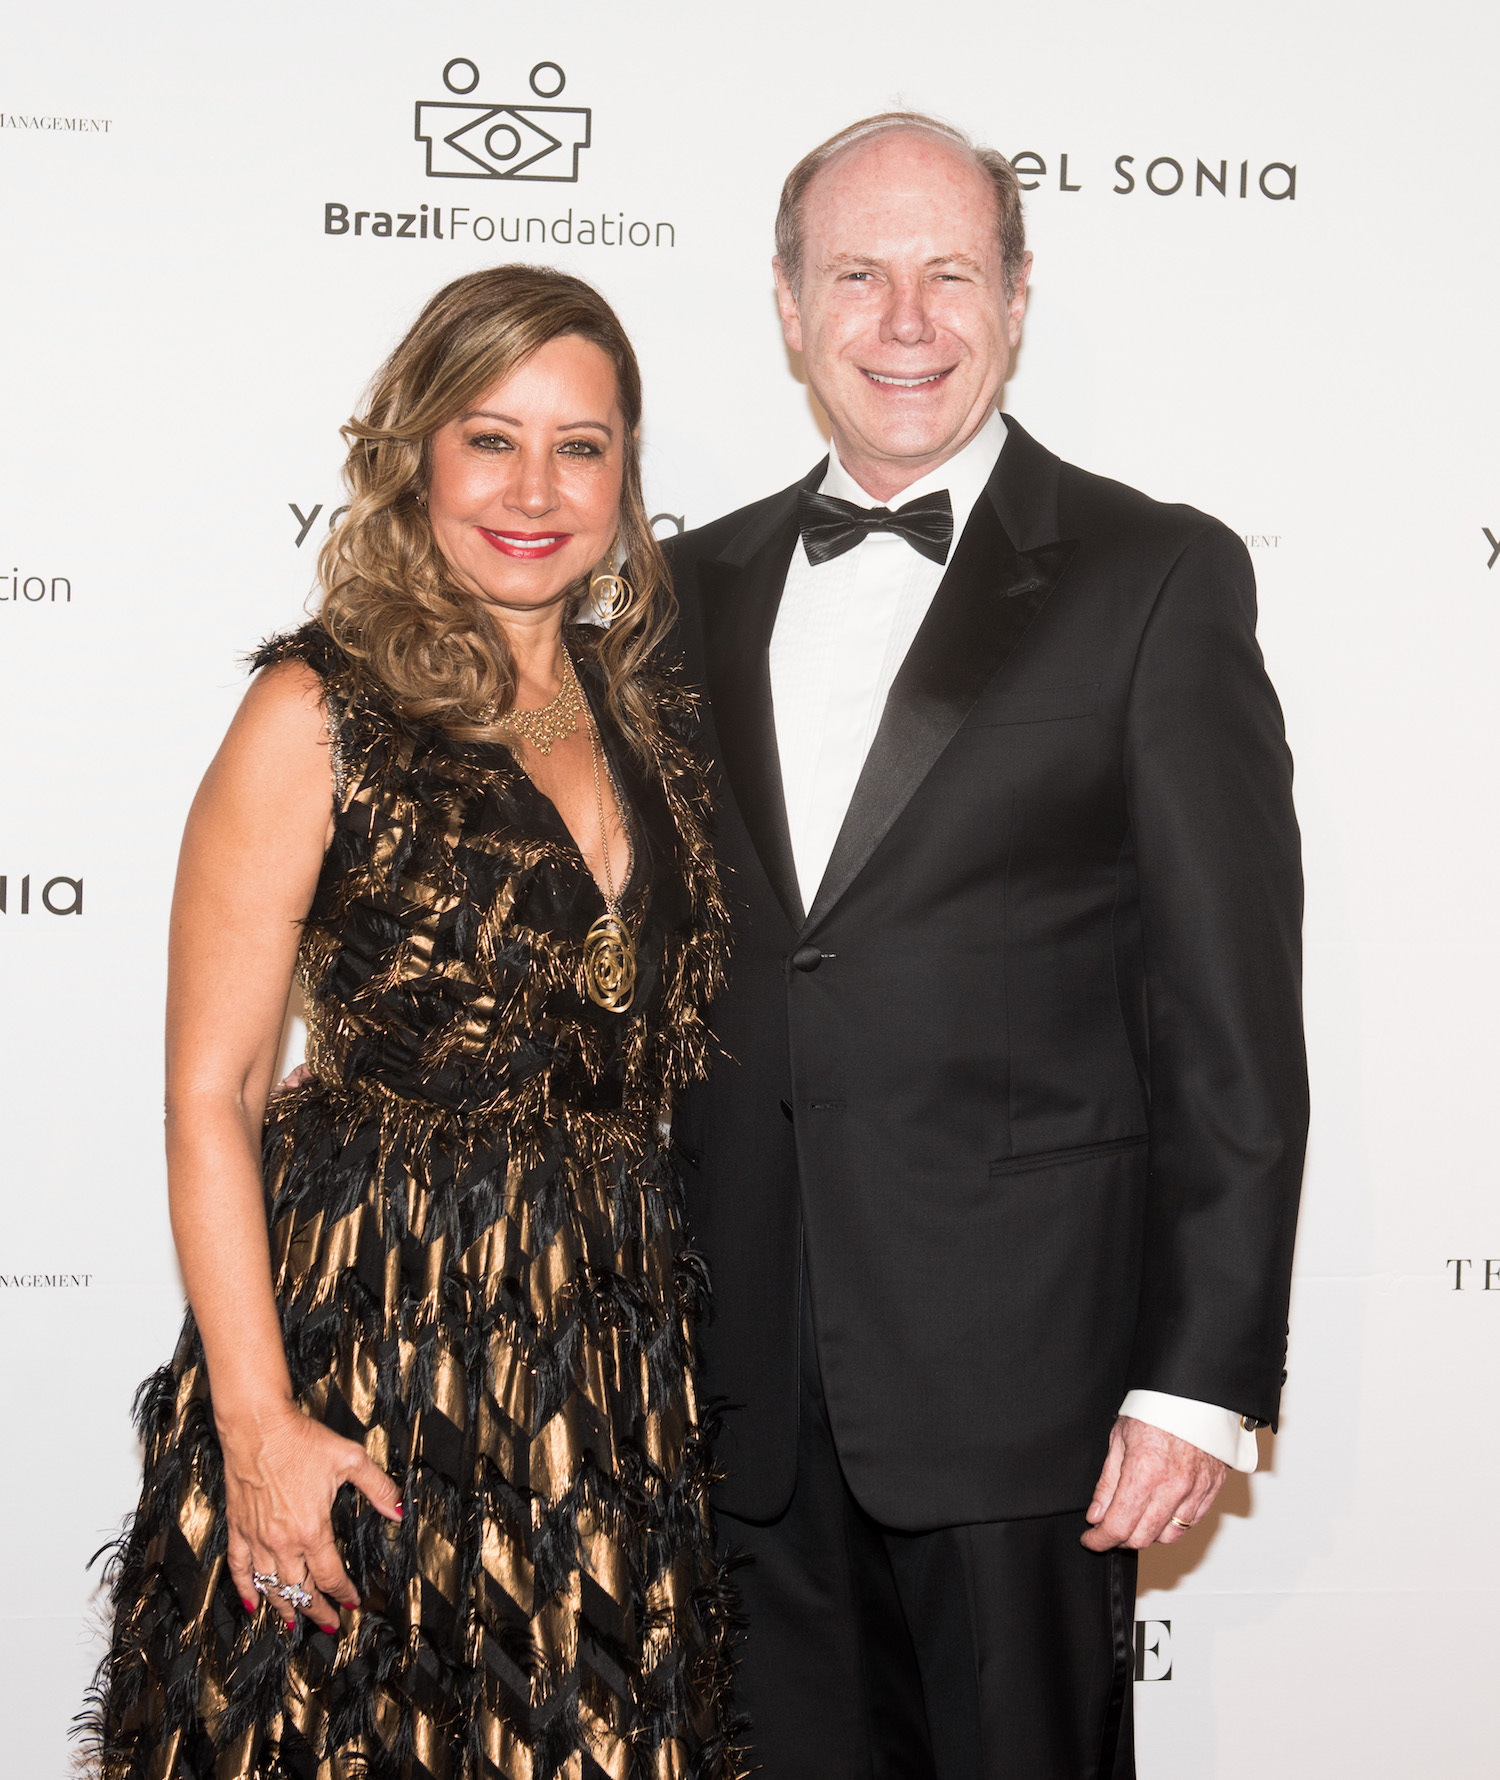 Iracilda & Pedro Lichtinger BrazilFoundation XVI Gala New York Celebrating the Amazon Plaza